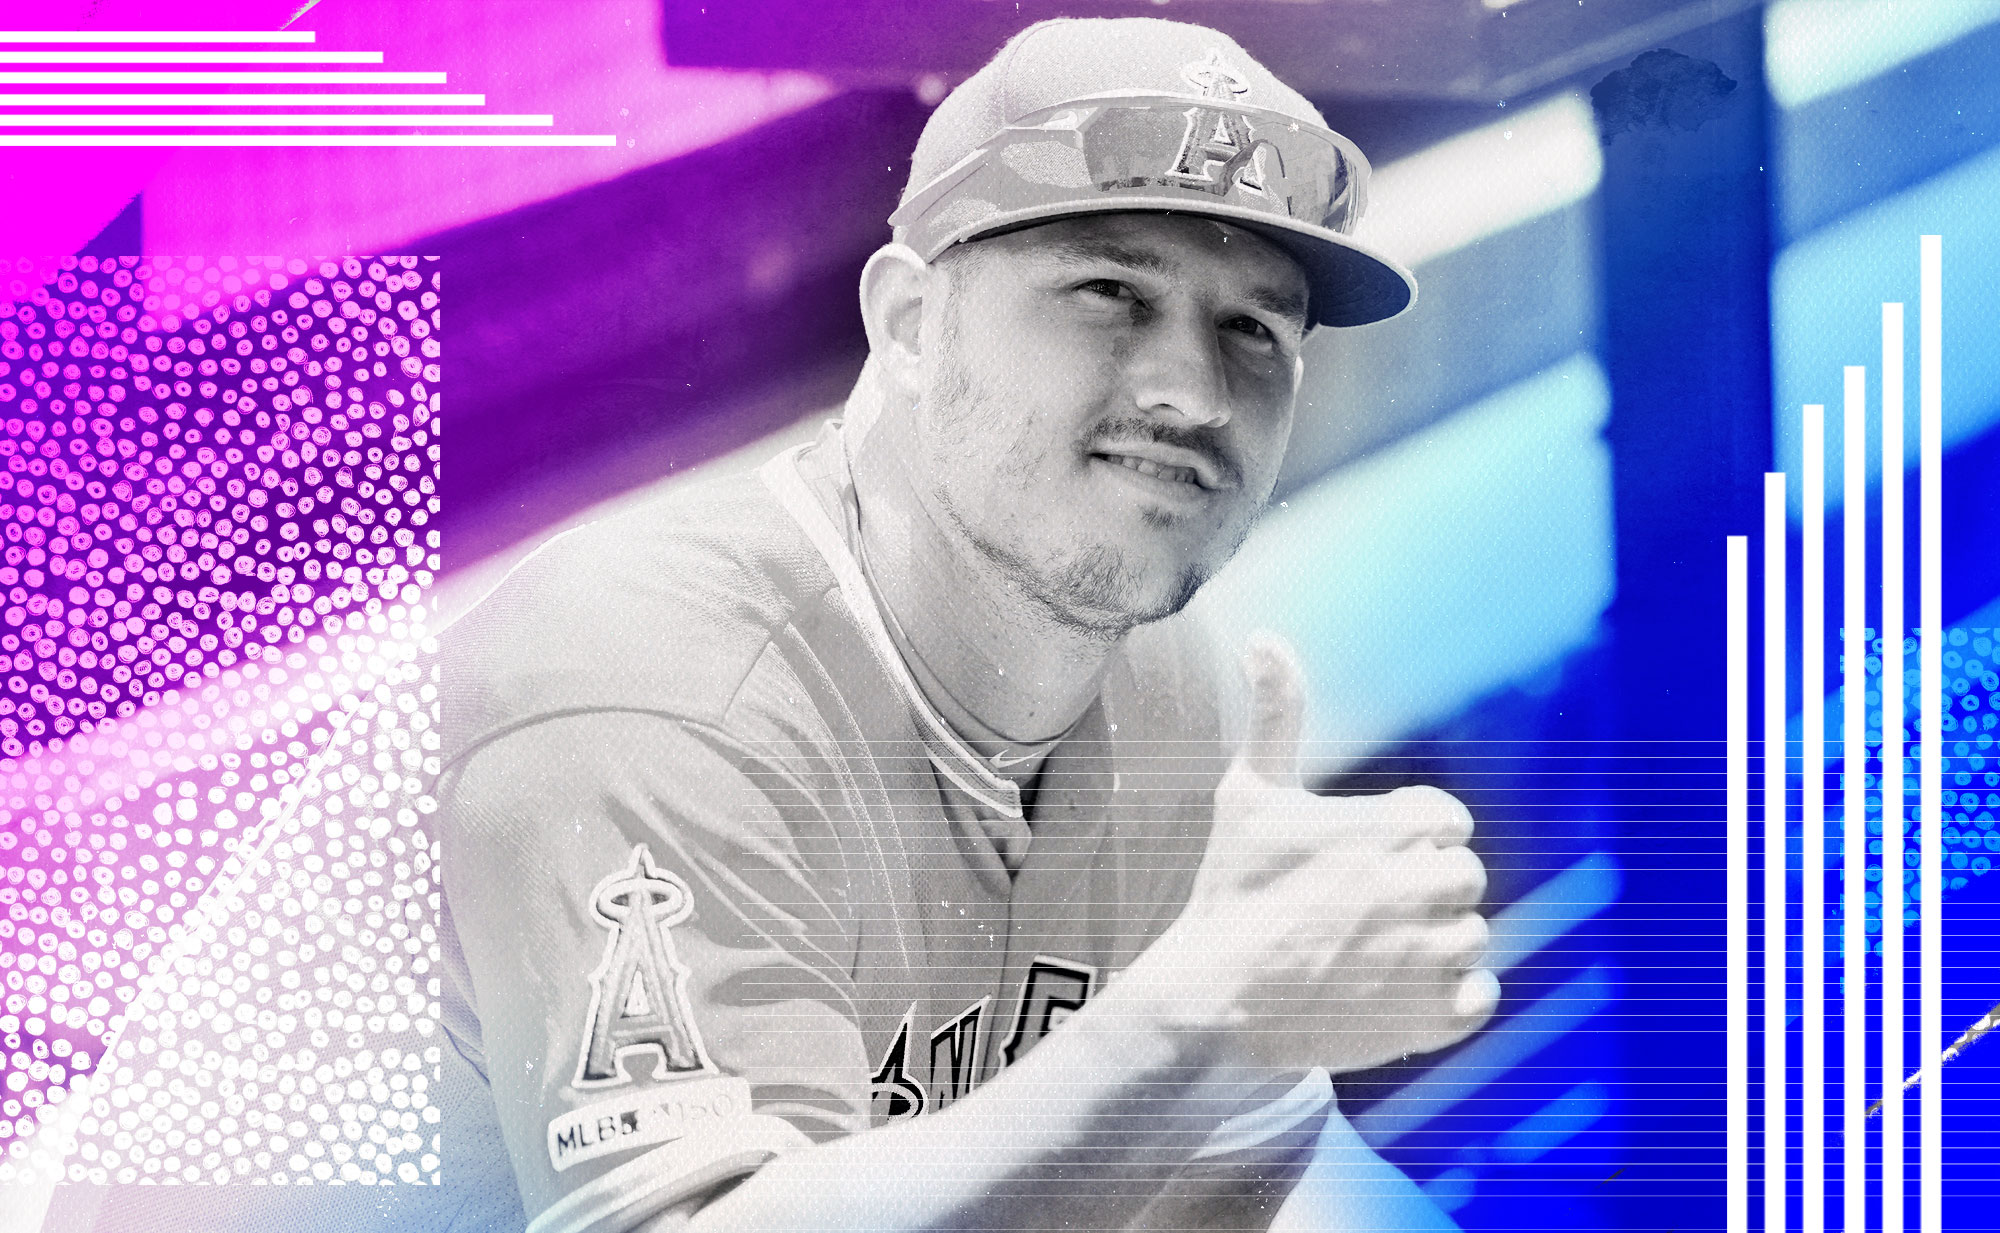 Mike Trout is so good, he already has a higher WAR than most Hall of Famers